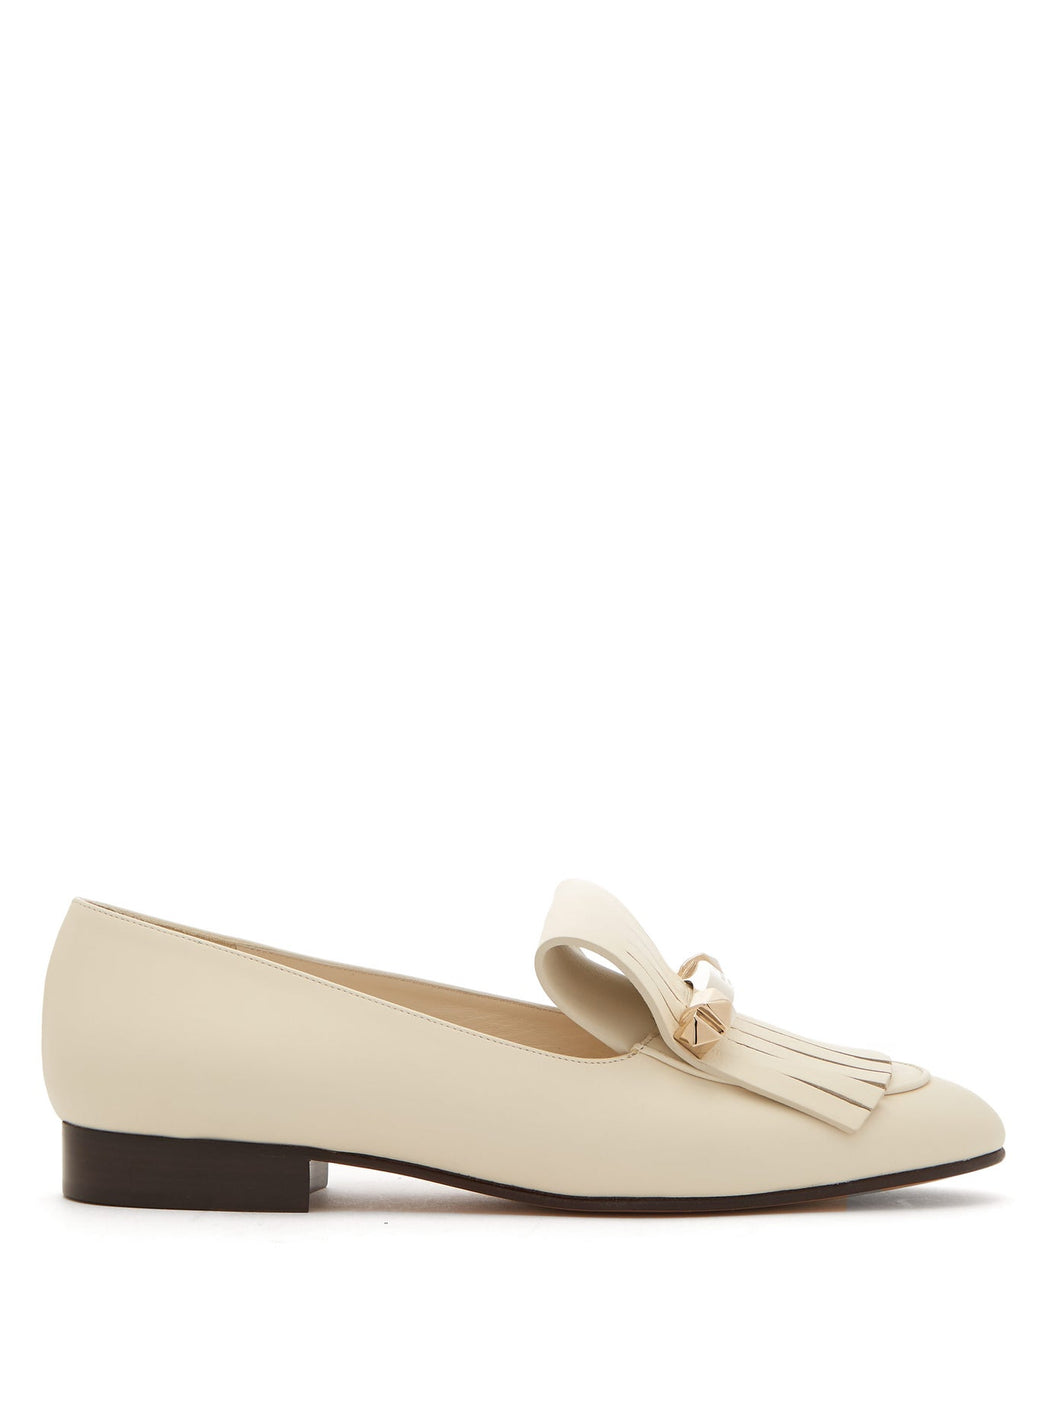 Uptown fringed leather loafers